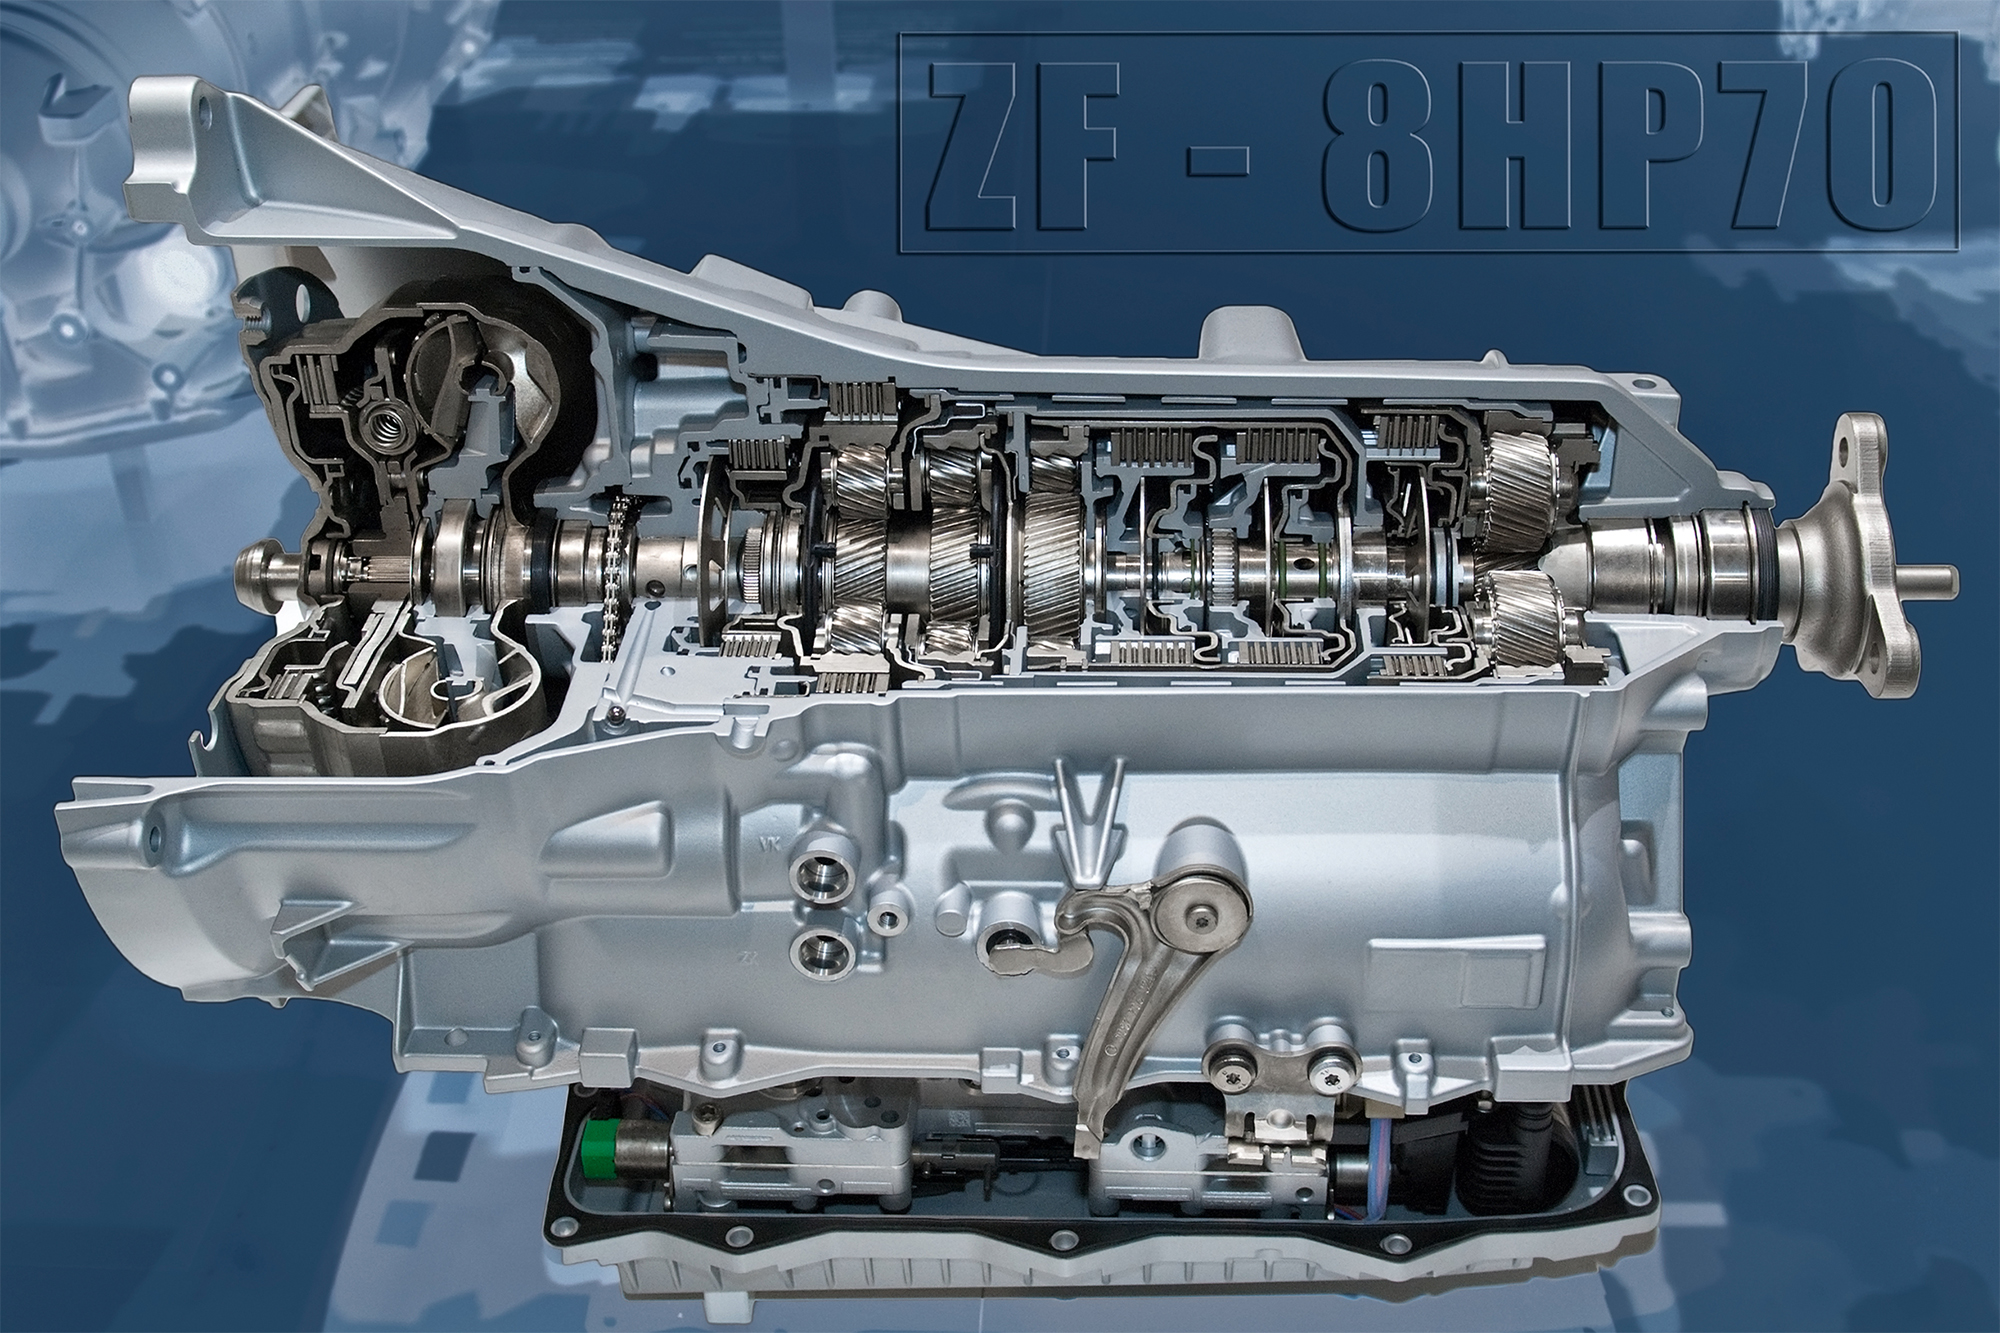 Zf 8hp Transmission Wikipedia Dodge Ram 1500 Diagram